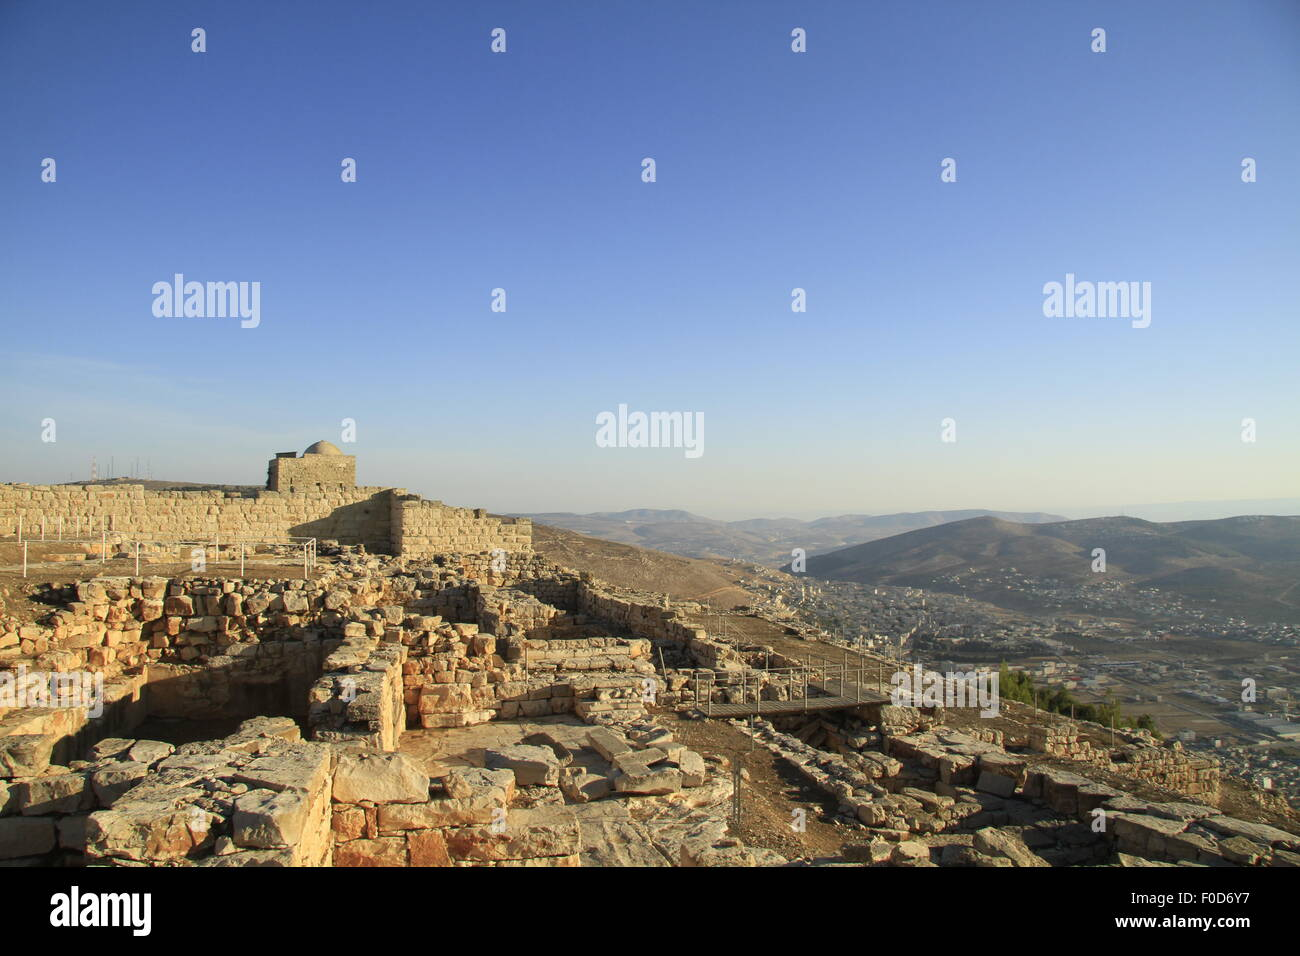 Samaria, ruins from the Hellenistic period on Mount Gerizim, tomb of Sheikh Ghanem from the 12th century is in the - Stock Image